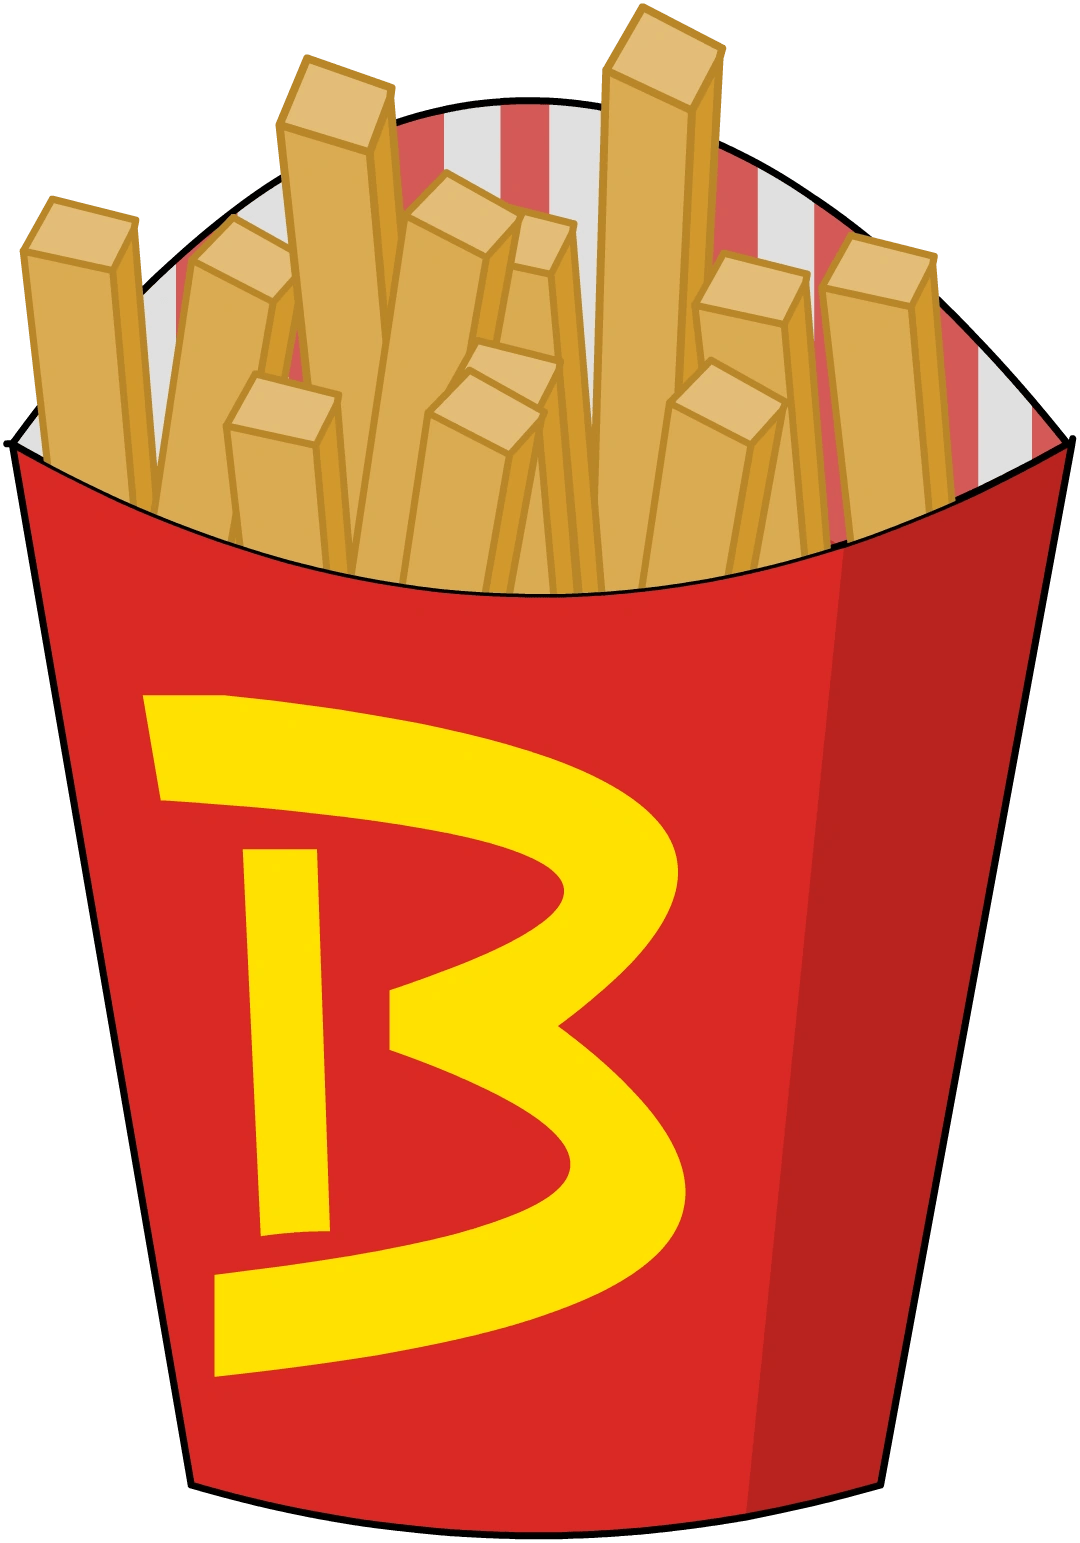 20 Bfdi Box Pictures And Ideas On Stem Education Caucus